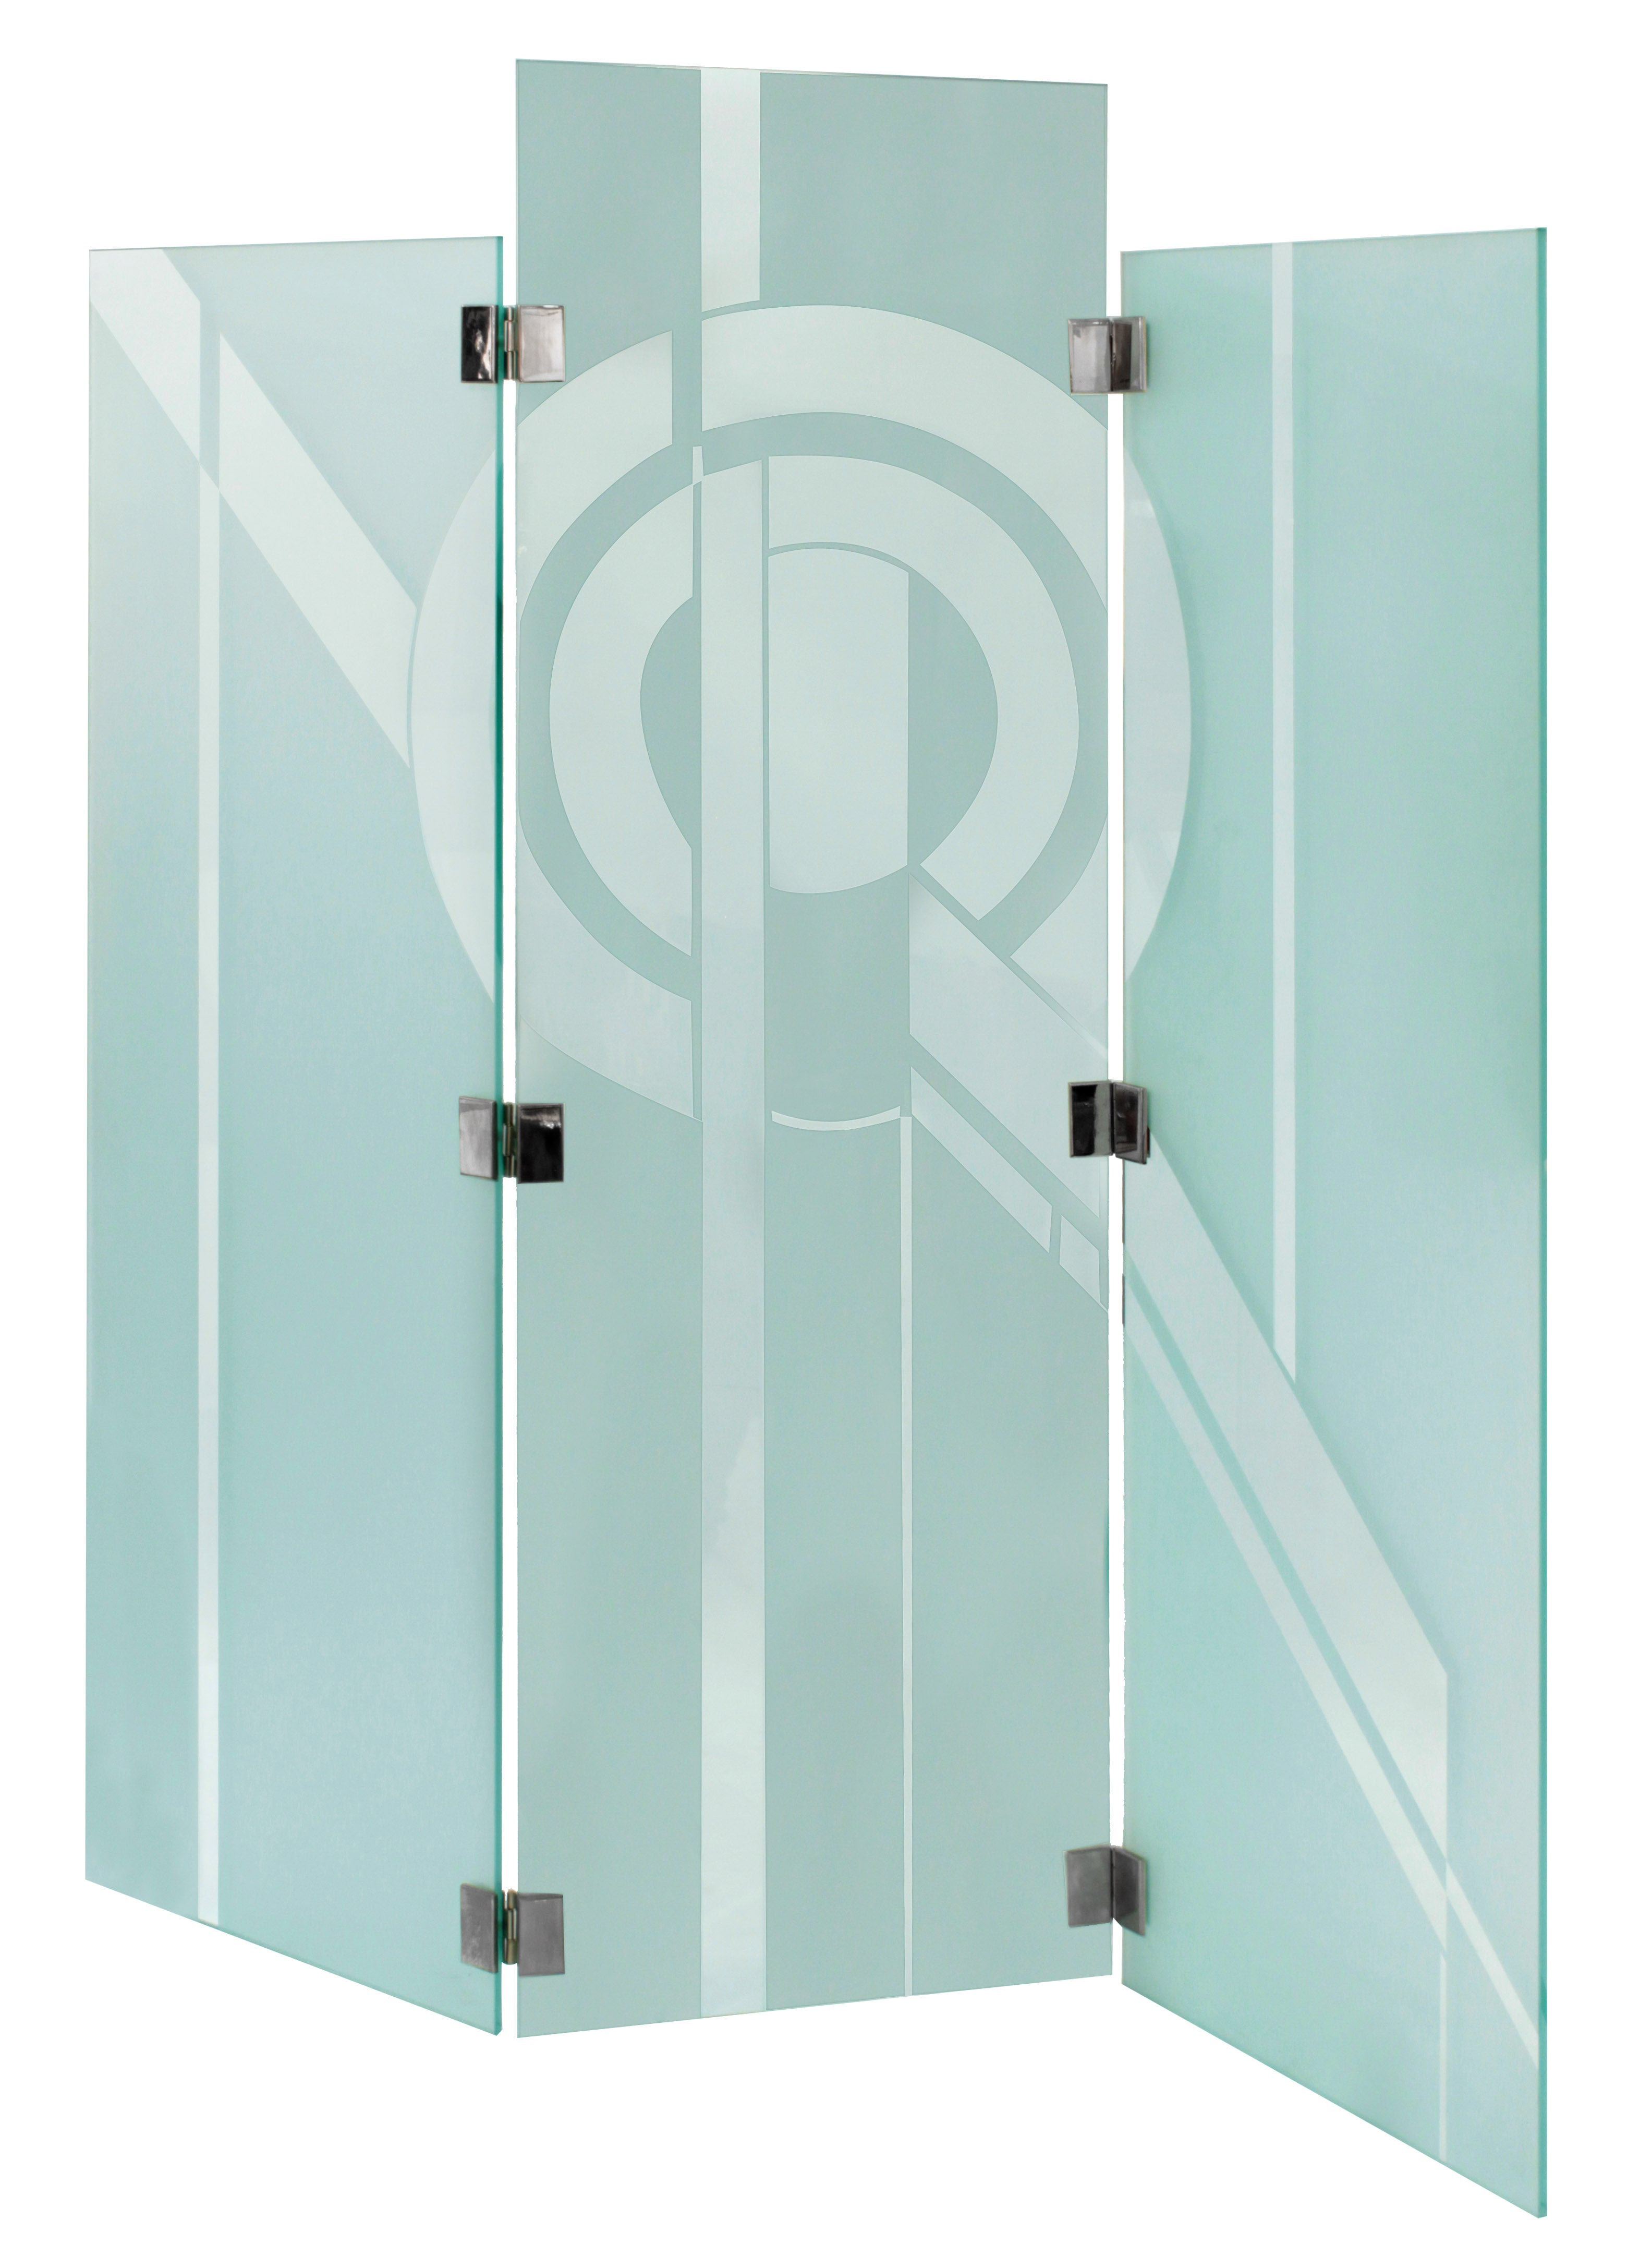 Impressive Three-Panel Etched Glass Screen by Shultz